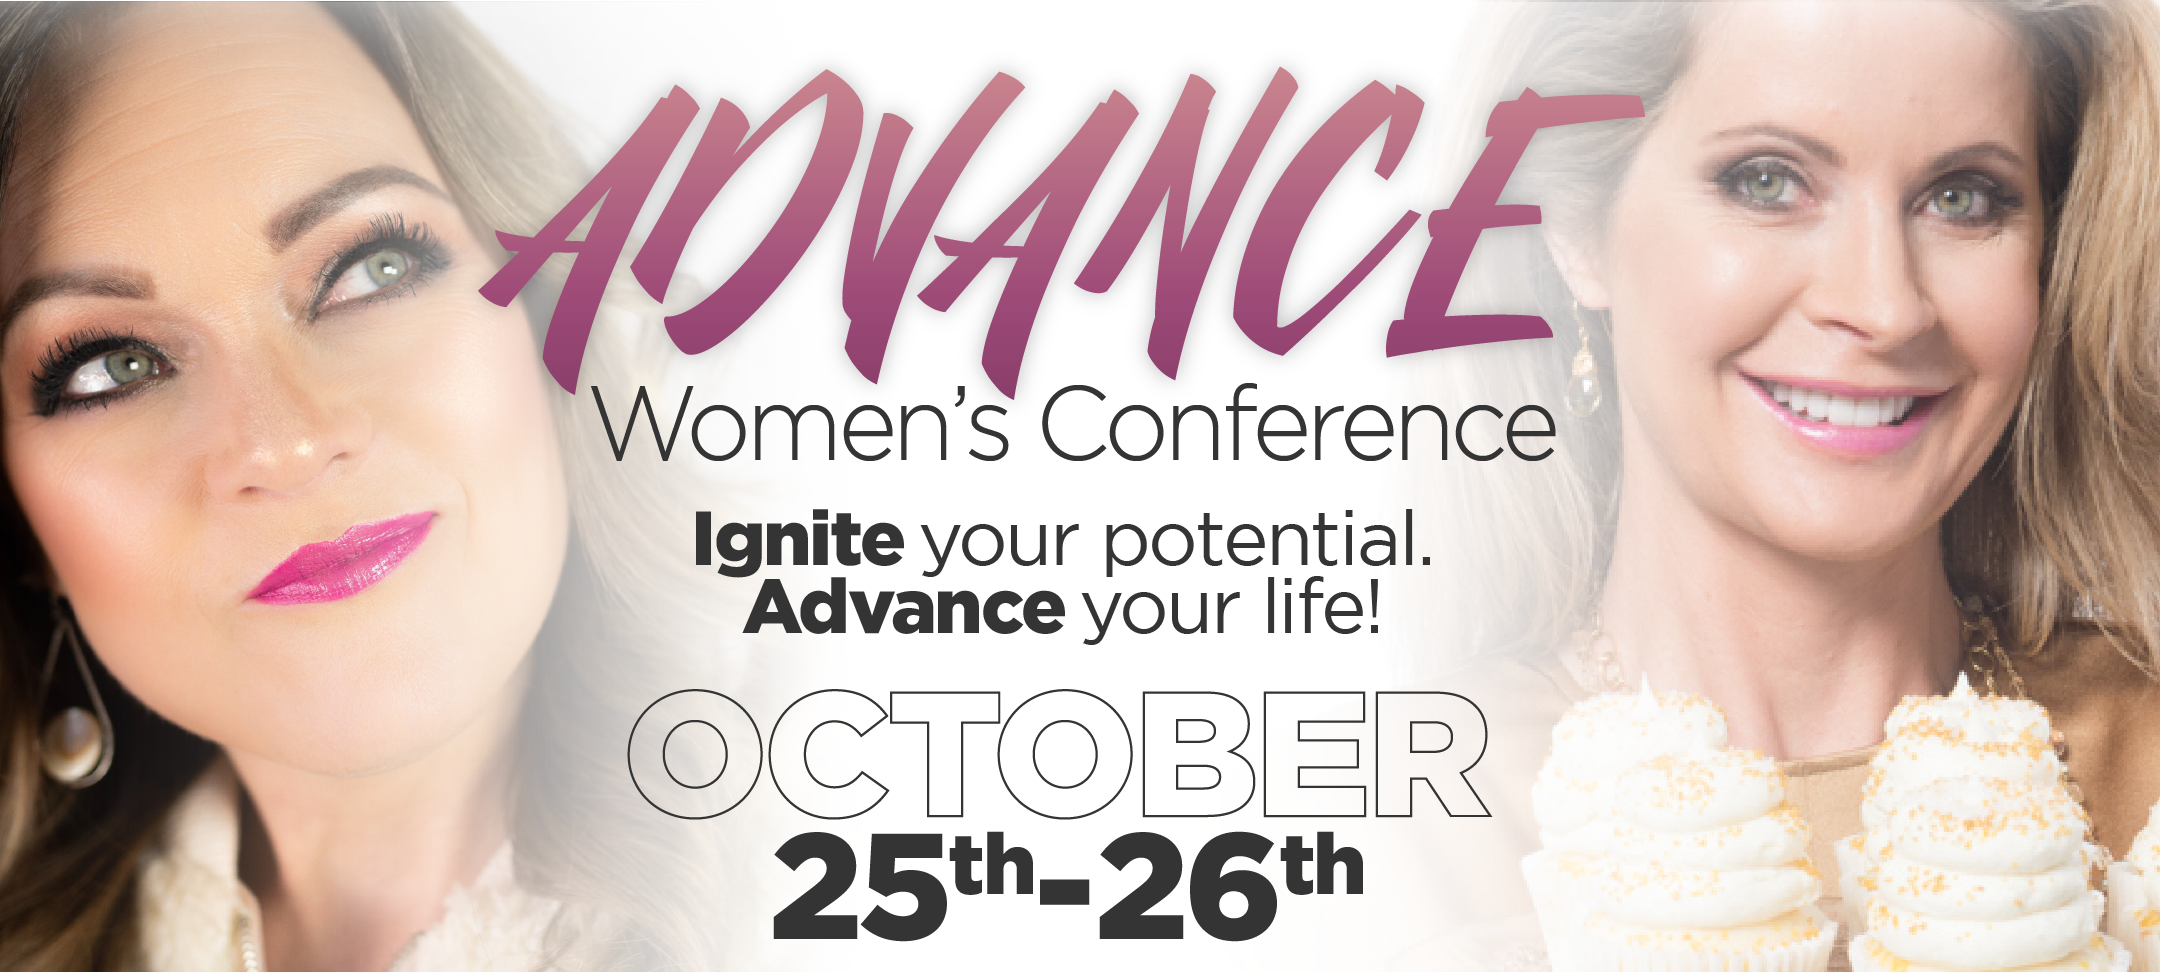 Advance_Women_s_Conference_(EventBrite)_[V2].png